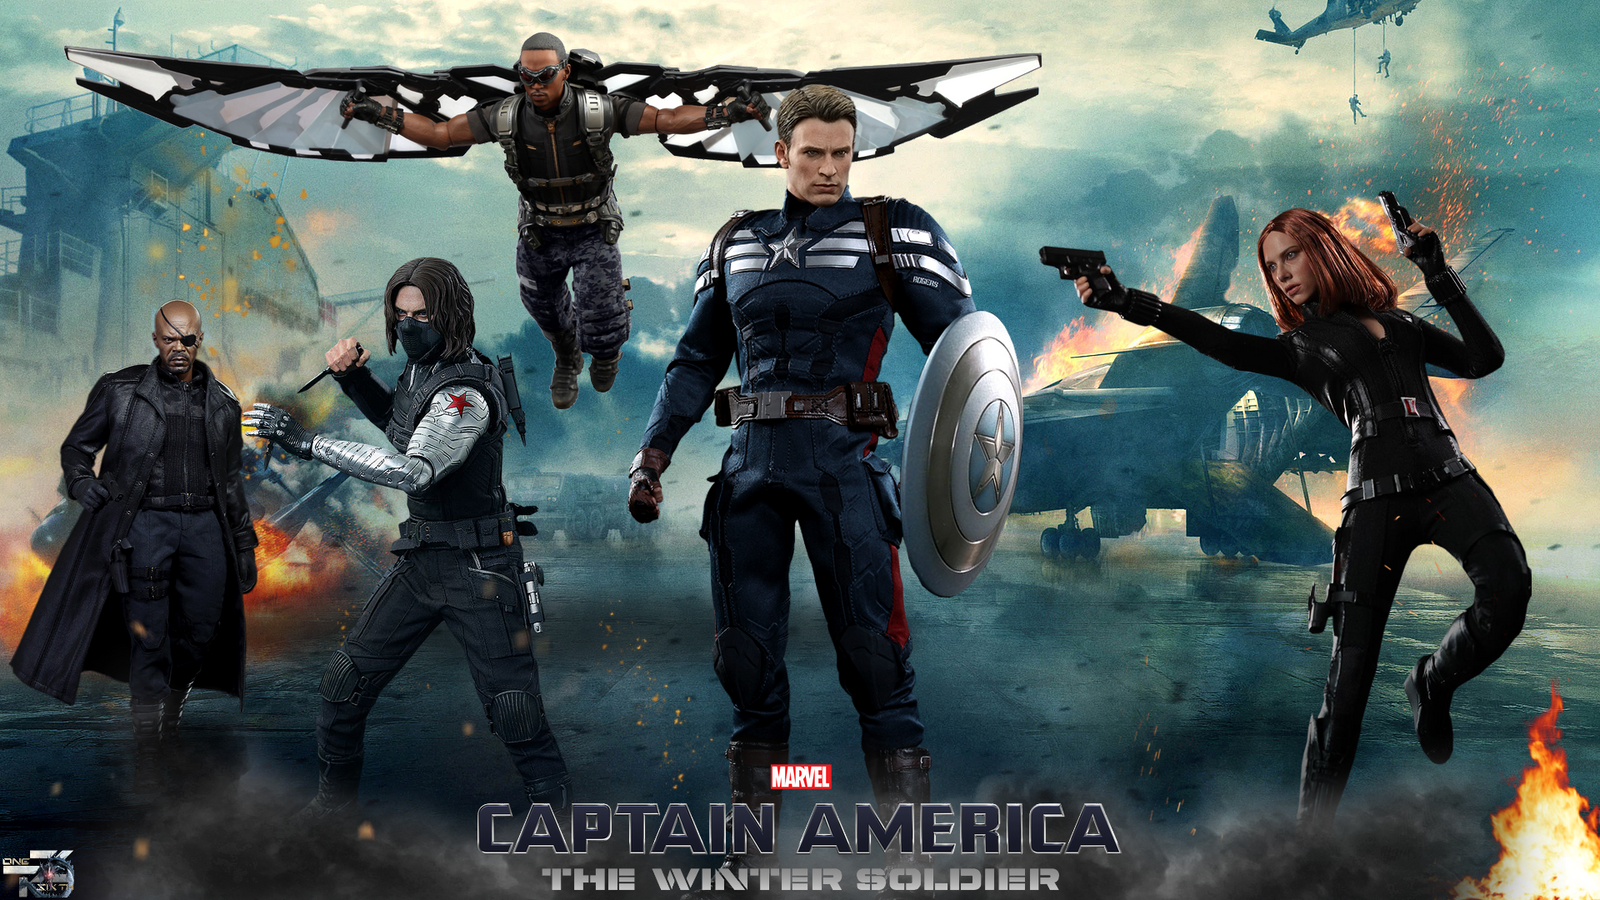 captain america the winter soldier - hot toysdavian-art on